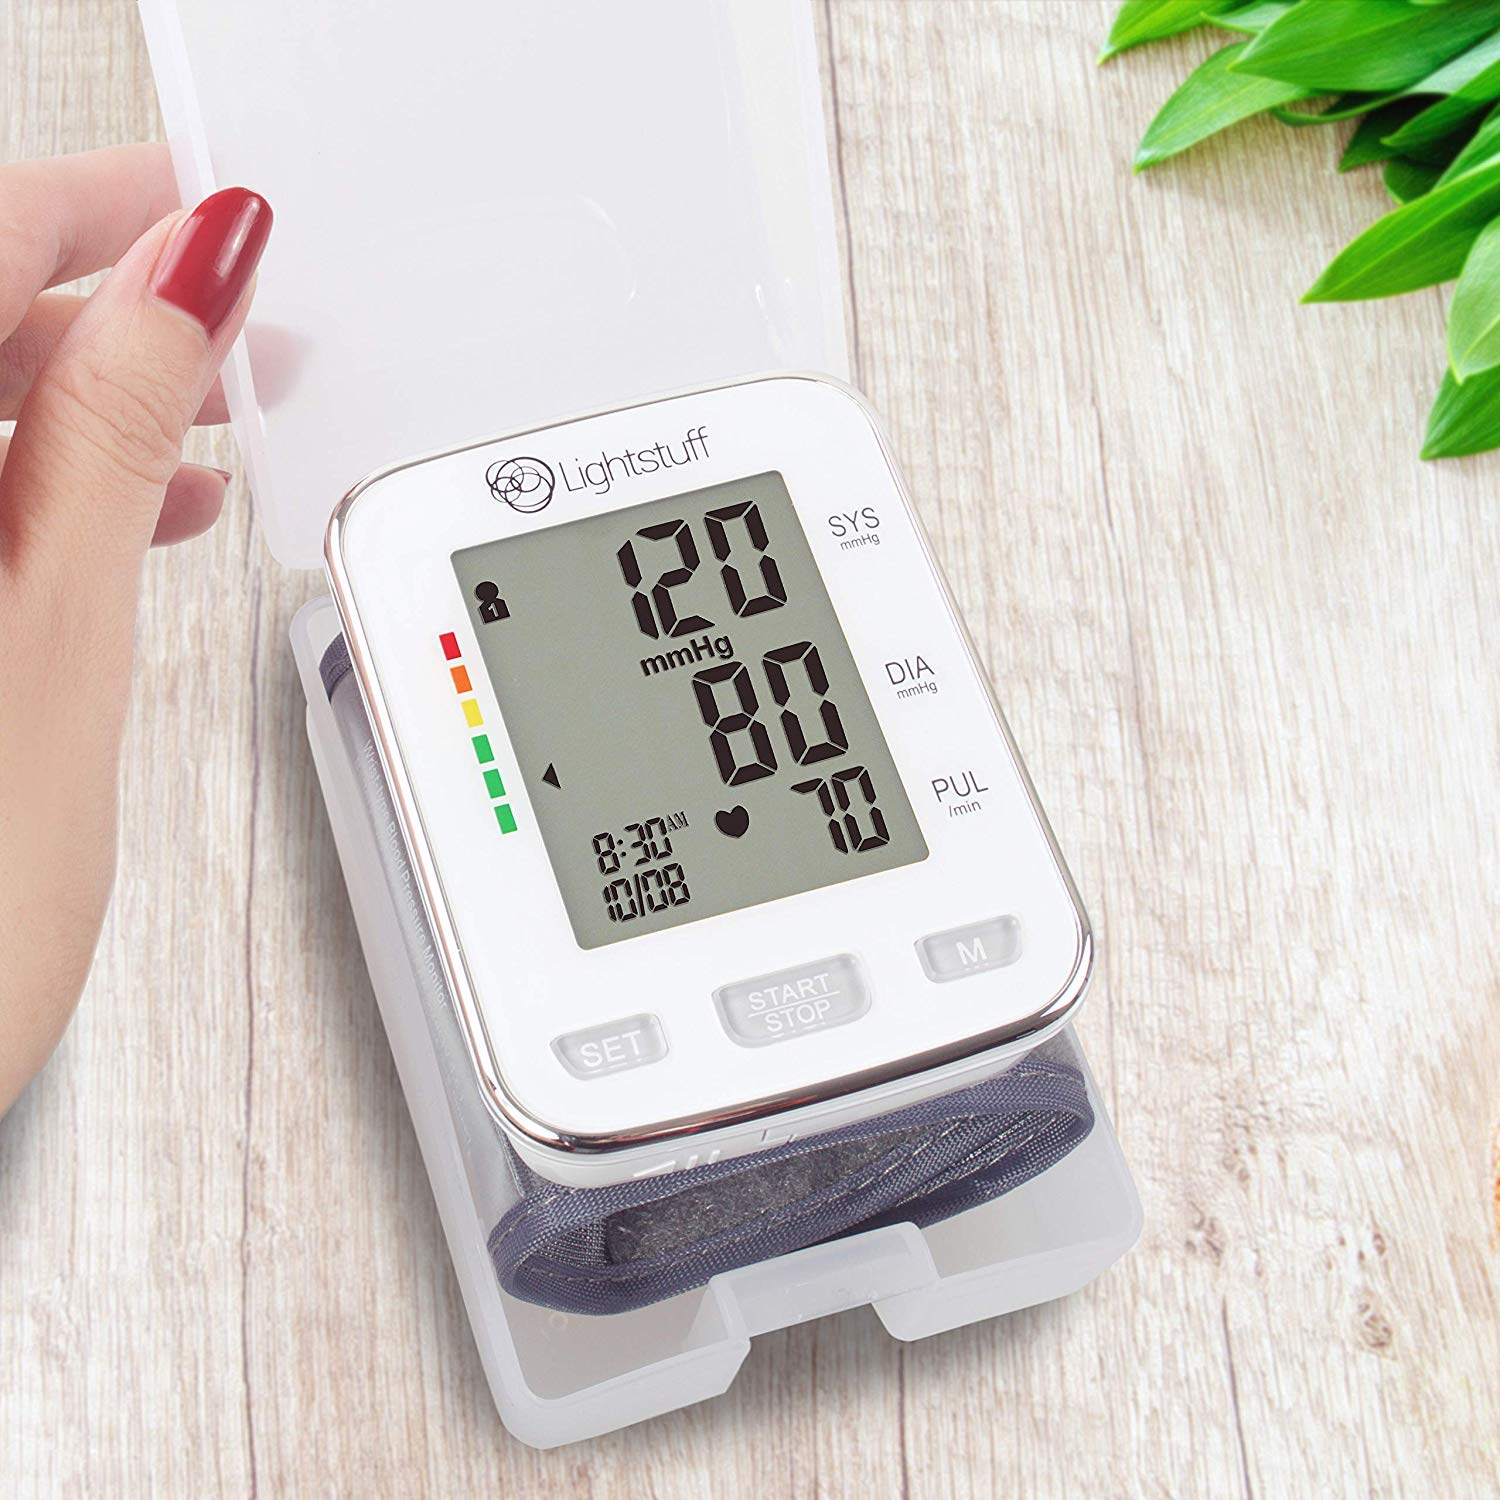 Lightstuff Easy Digital Blood Pressure Monitor FDA-Approved, Portable Wrist-Cuff for Dependable, Painless BP Monitoring at Home